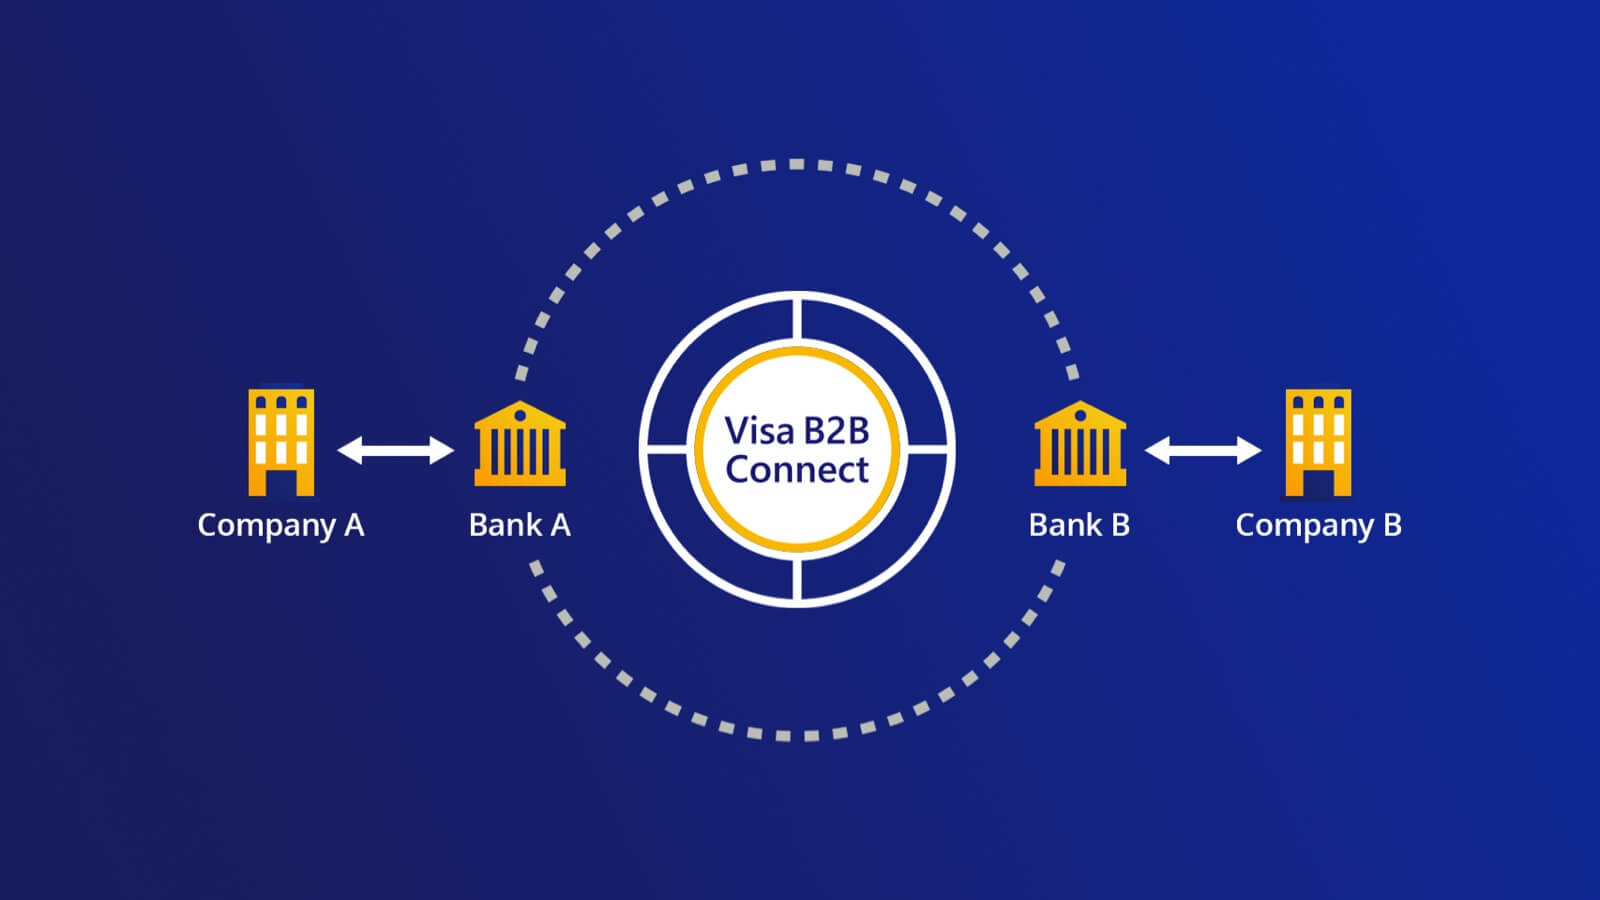 Illustration of Visa B2B Connect cross-border payment.